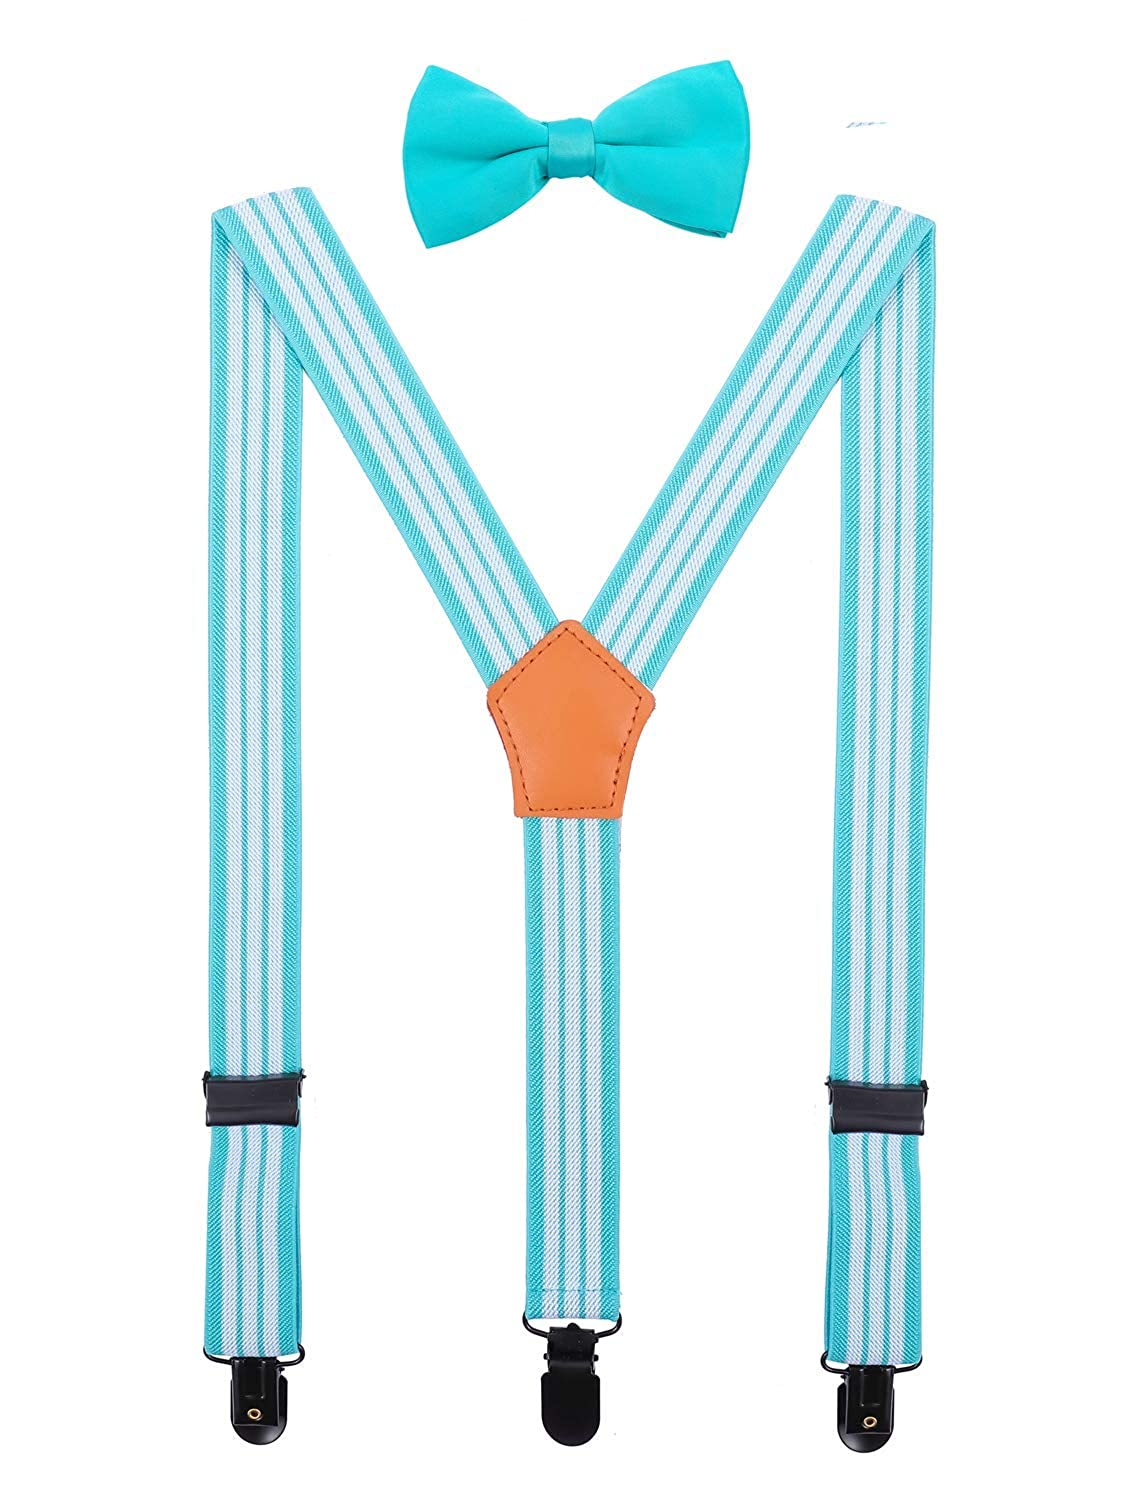 ORSKY Men Boys Suspenders and Bow Tie Set Adjustable with Black Clips